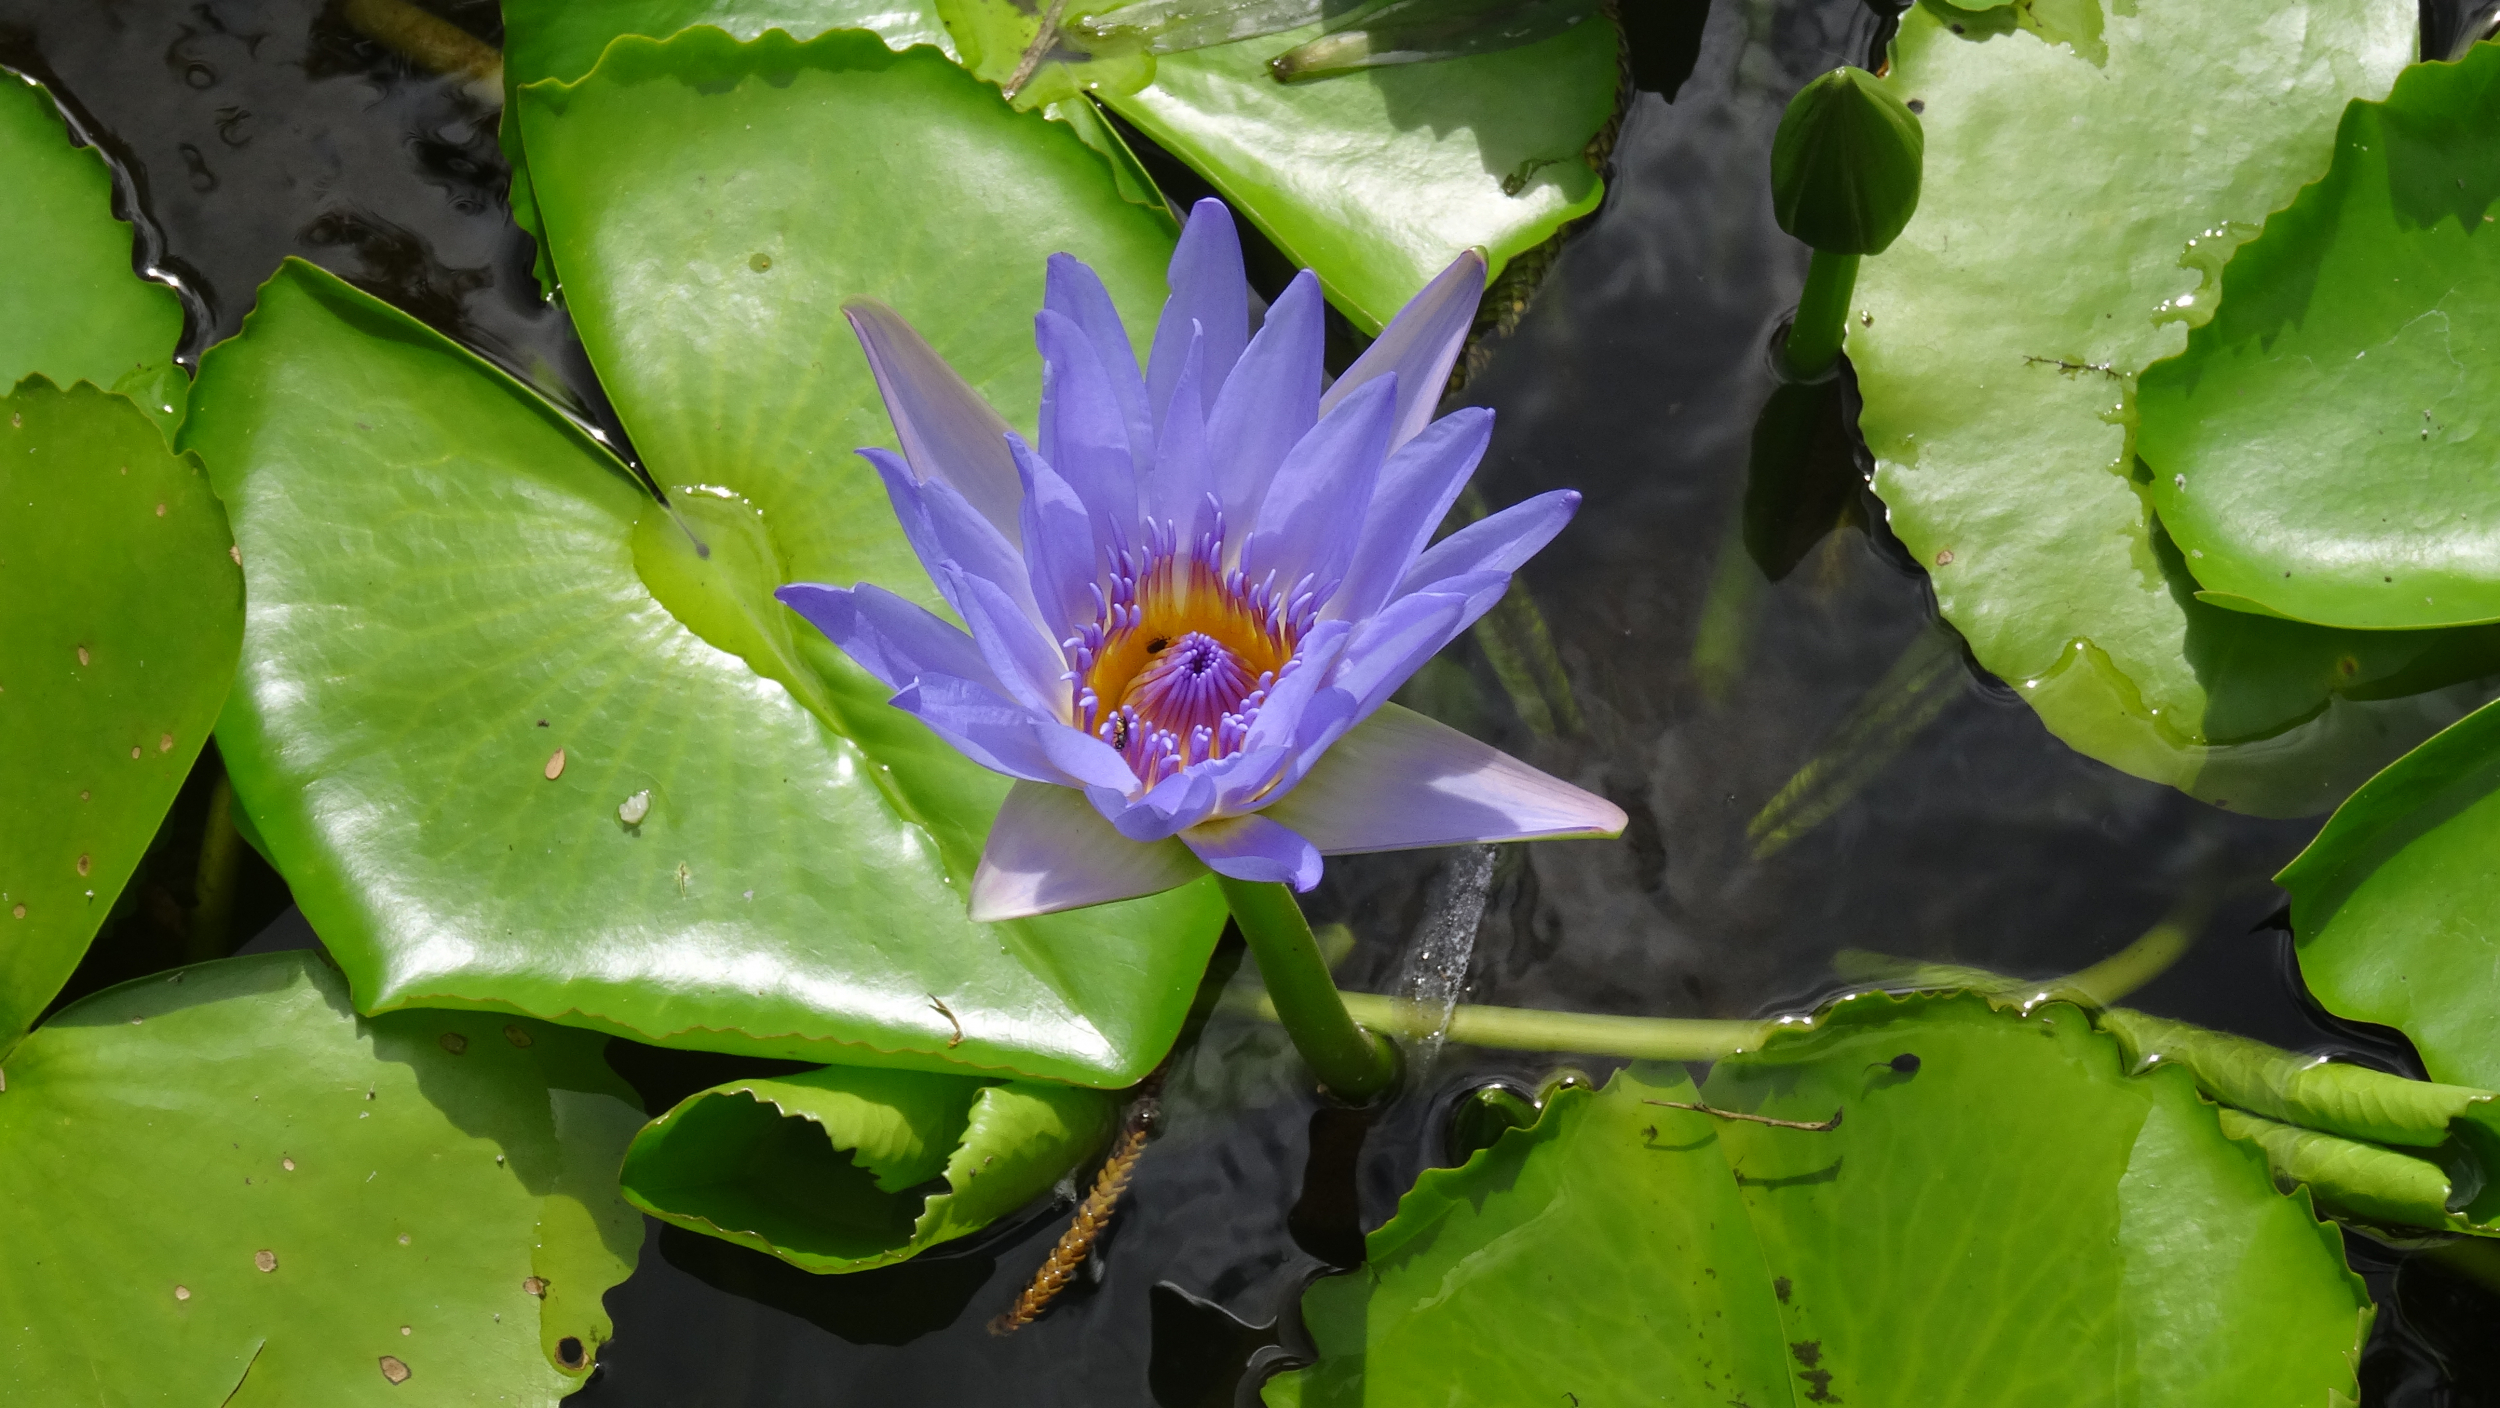 30. Water lily